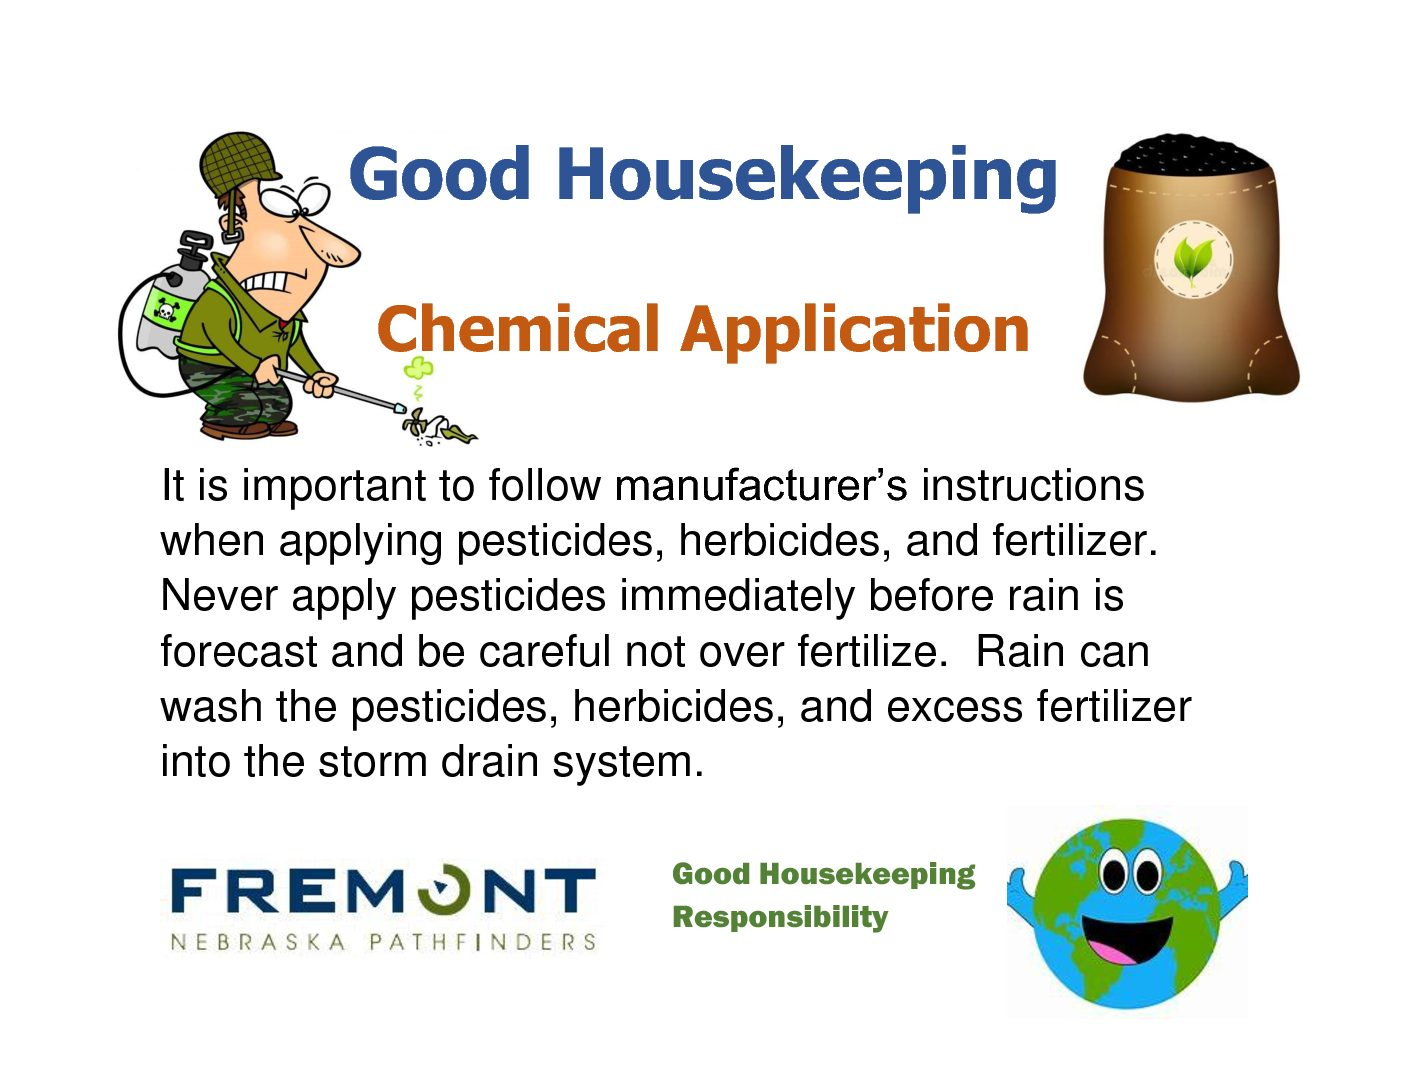 Good Housekeeping – Chemical Application